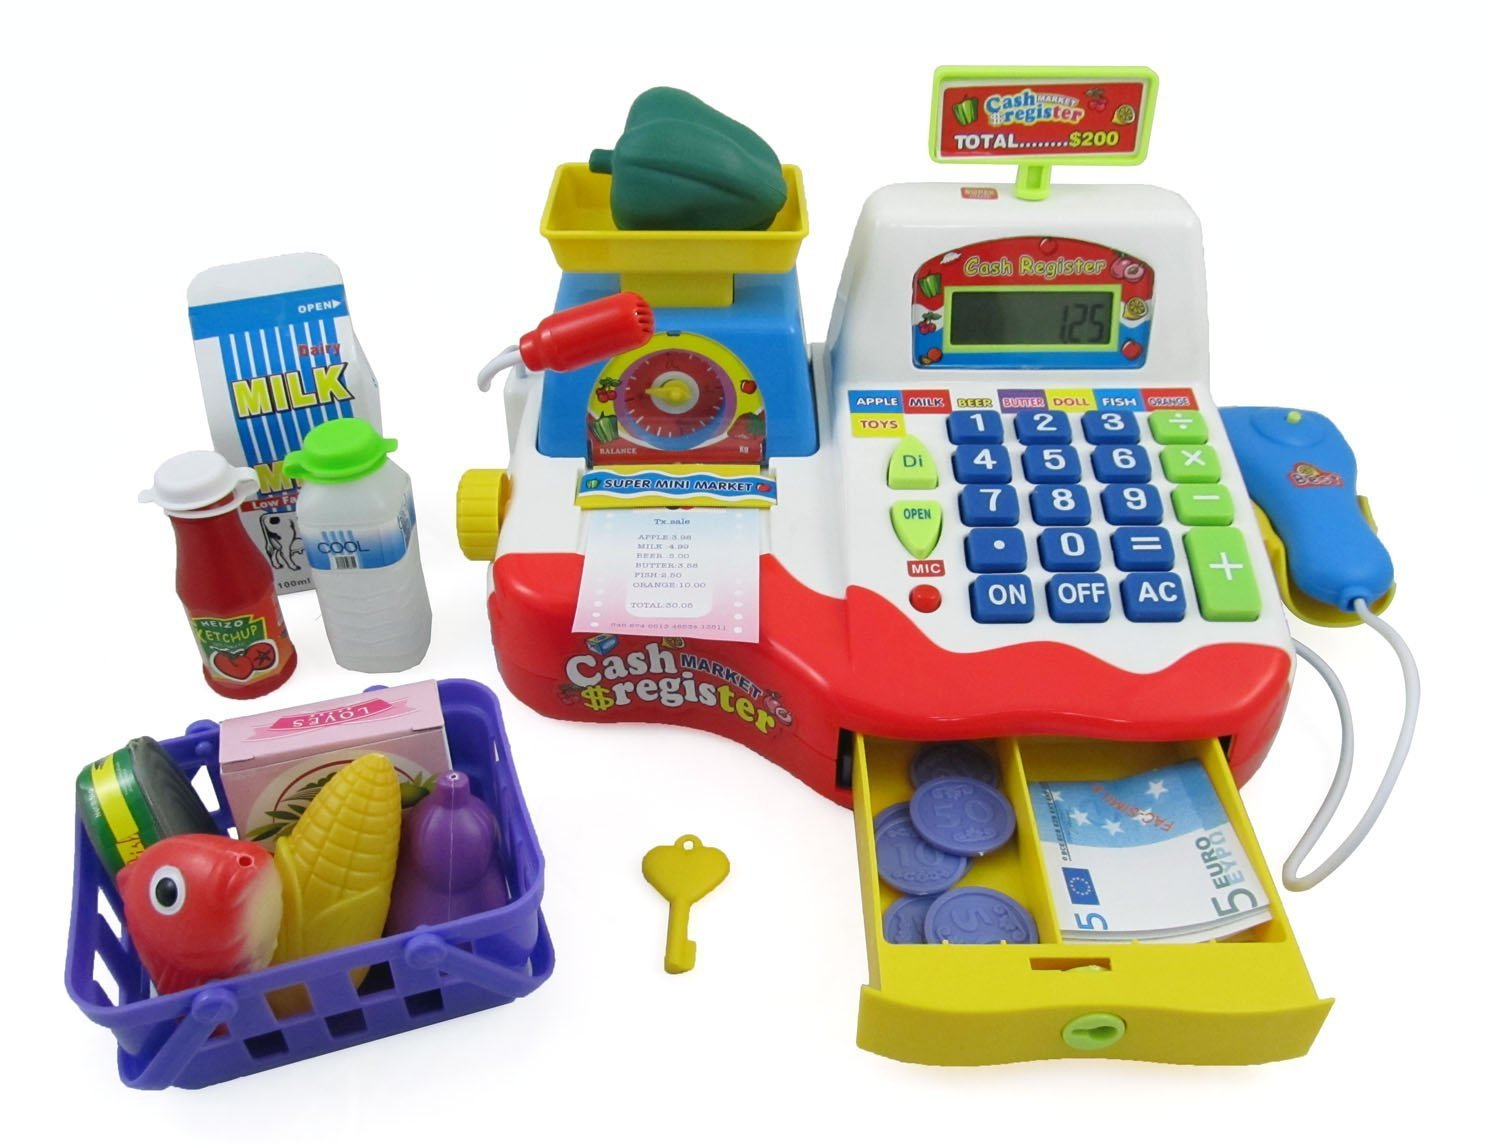 PowerTRC® Supermarket Cash Register with Checkout Scanner, Weight Scale, Microphone, Calculator, Play Money and Food Shopping Playset for kids